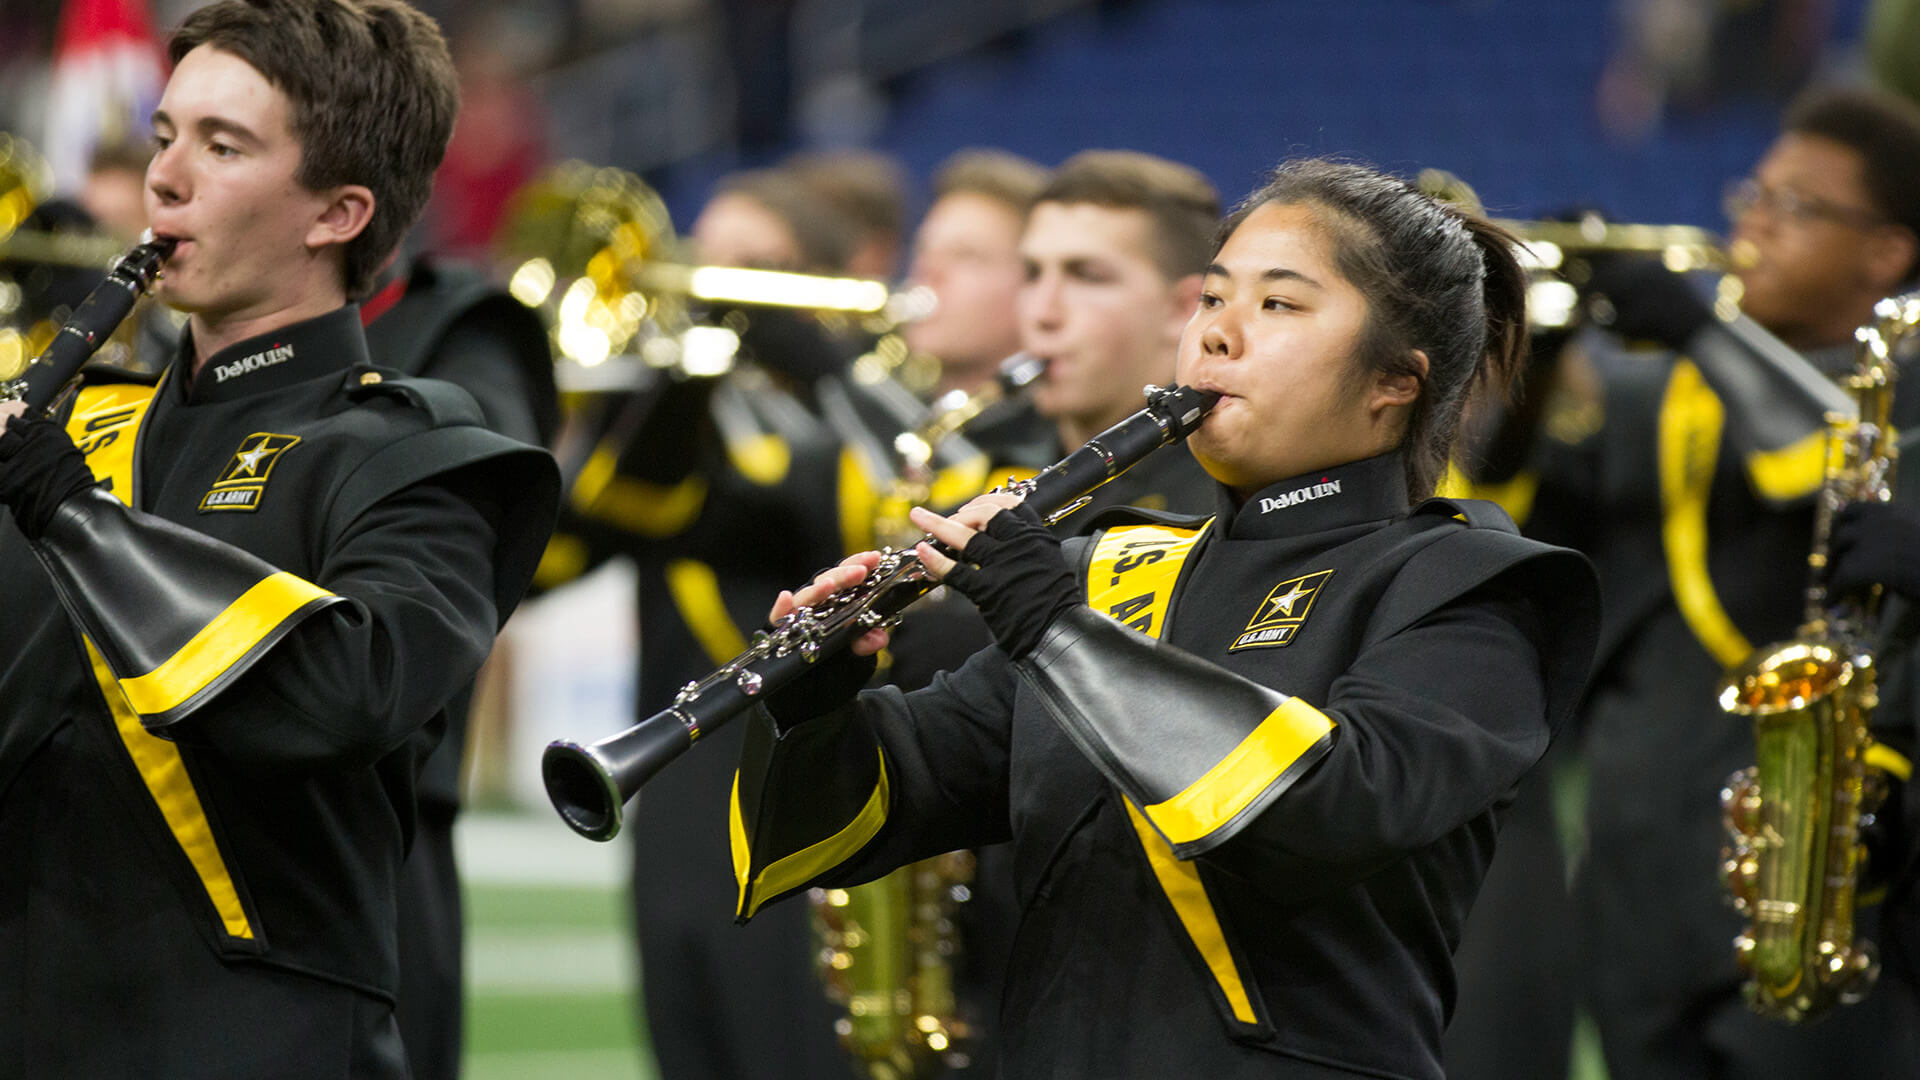 U.S. Army All-American Marching Band excels in San Antonio